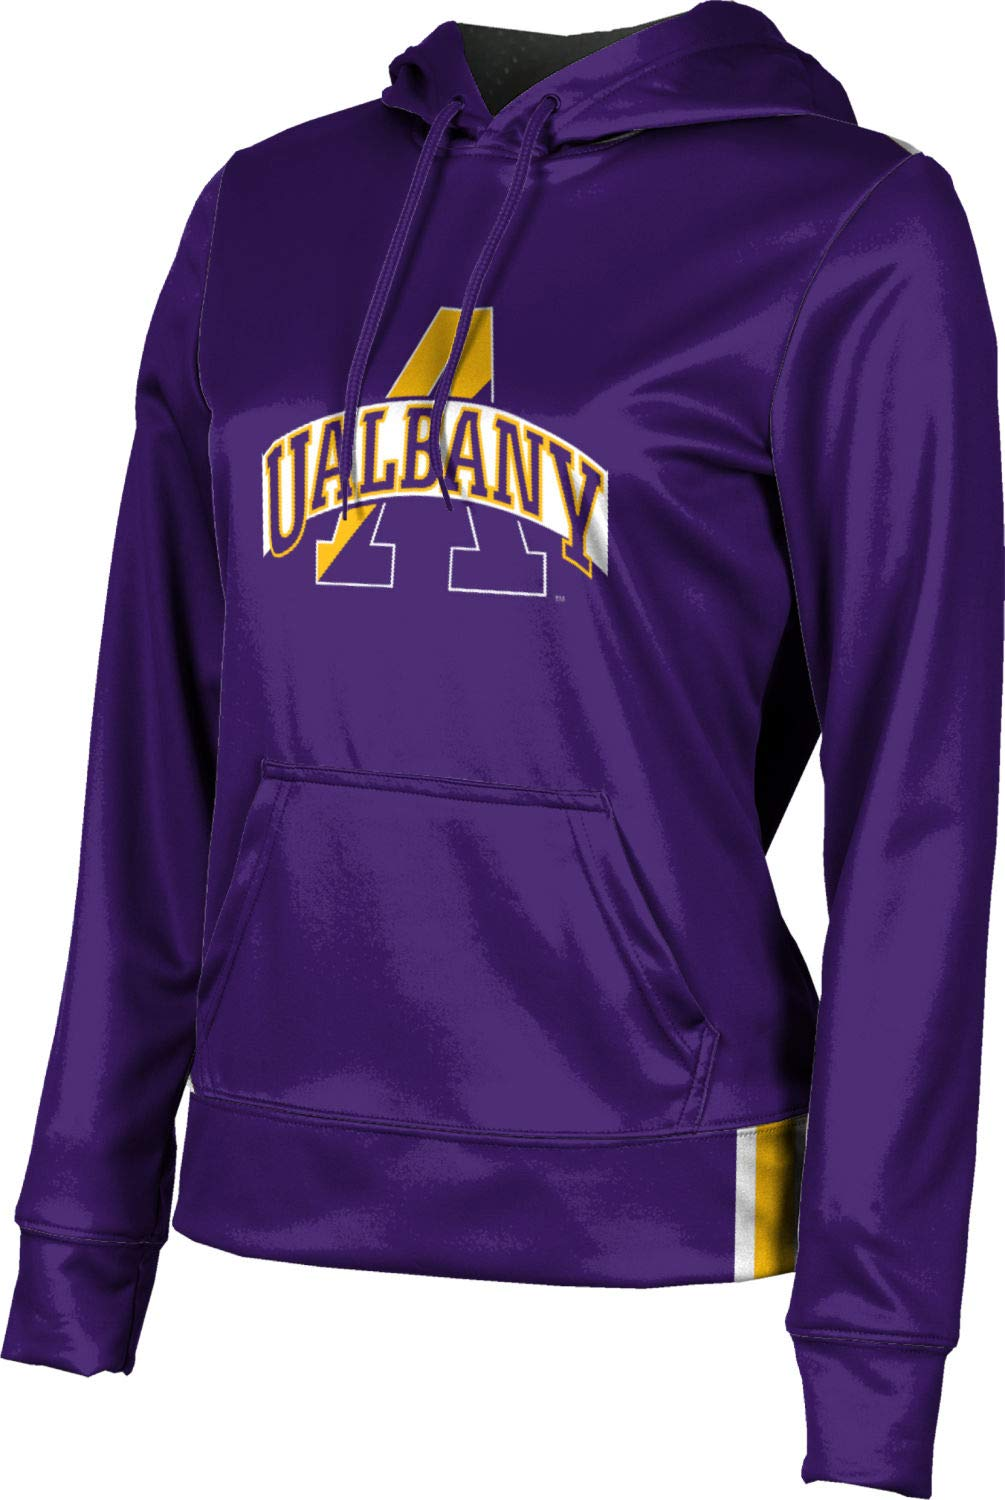 ProSphere University at Albany Women's Pullover Hoodie - Solid FF4A (Large)